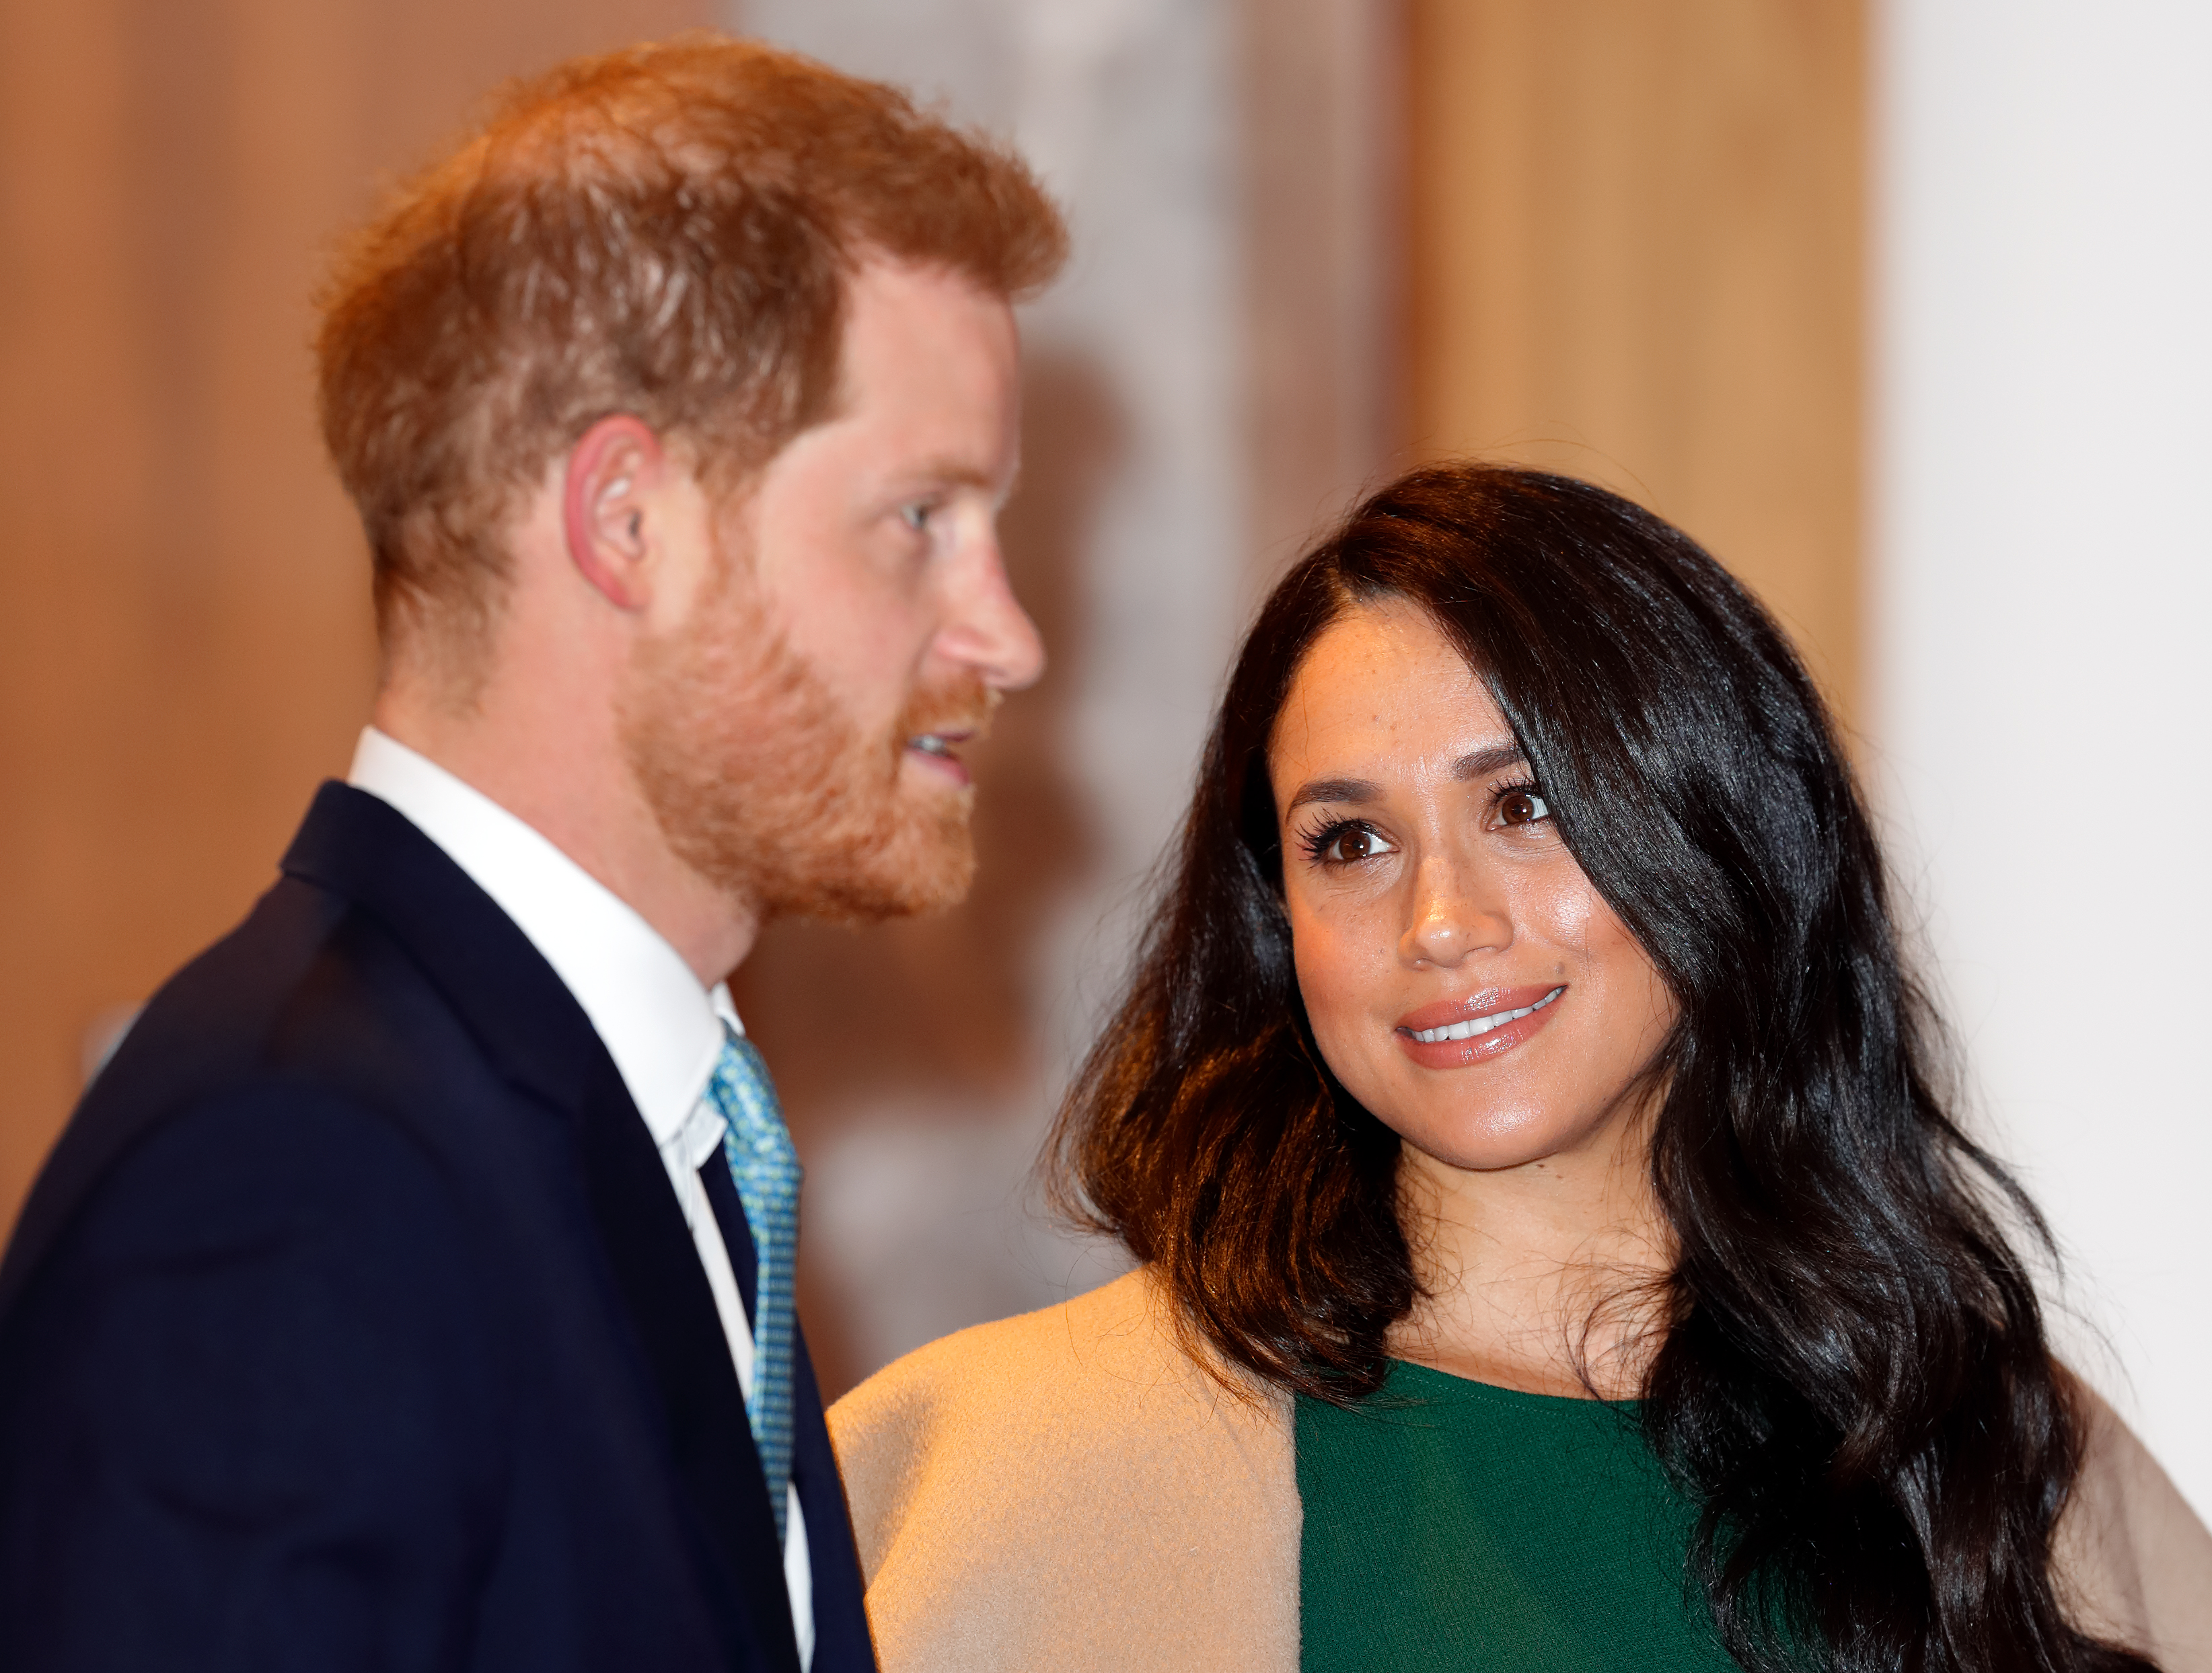 Meghan and Harry at the WellChild awards